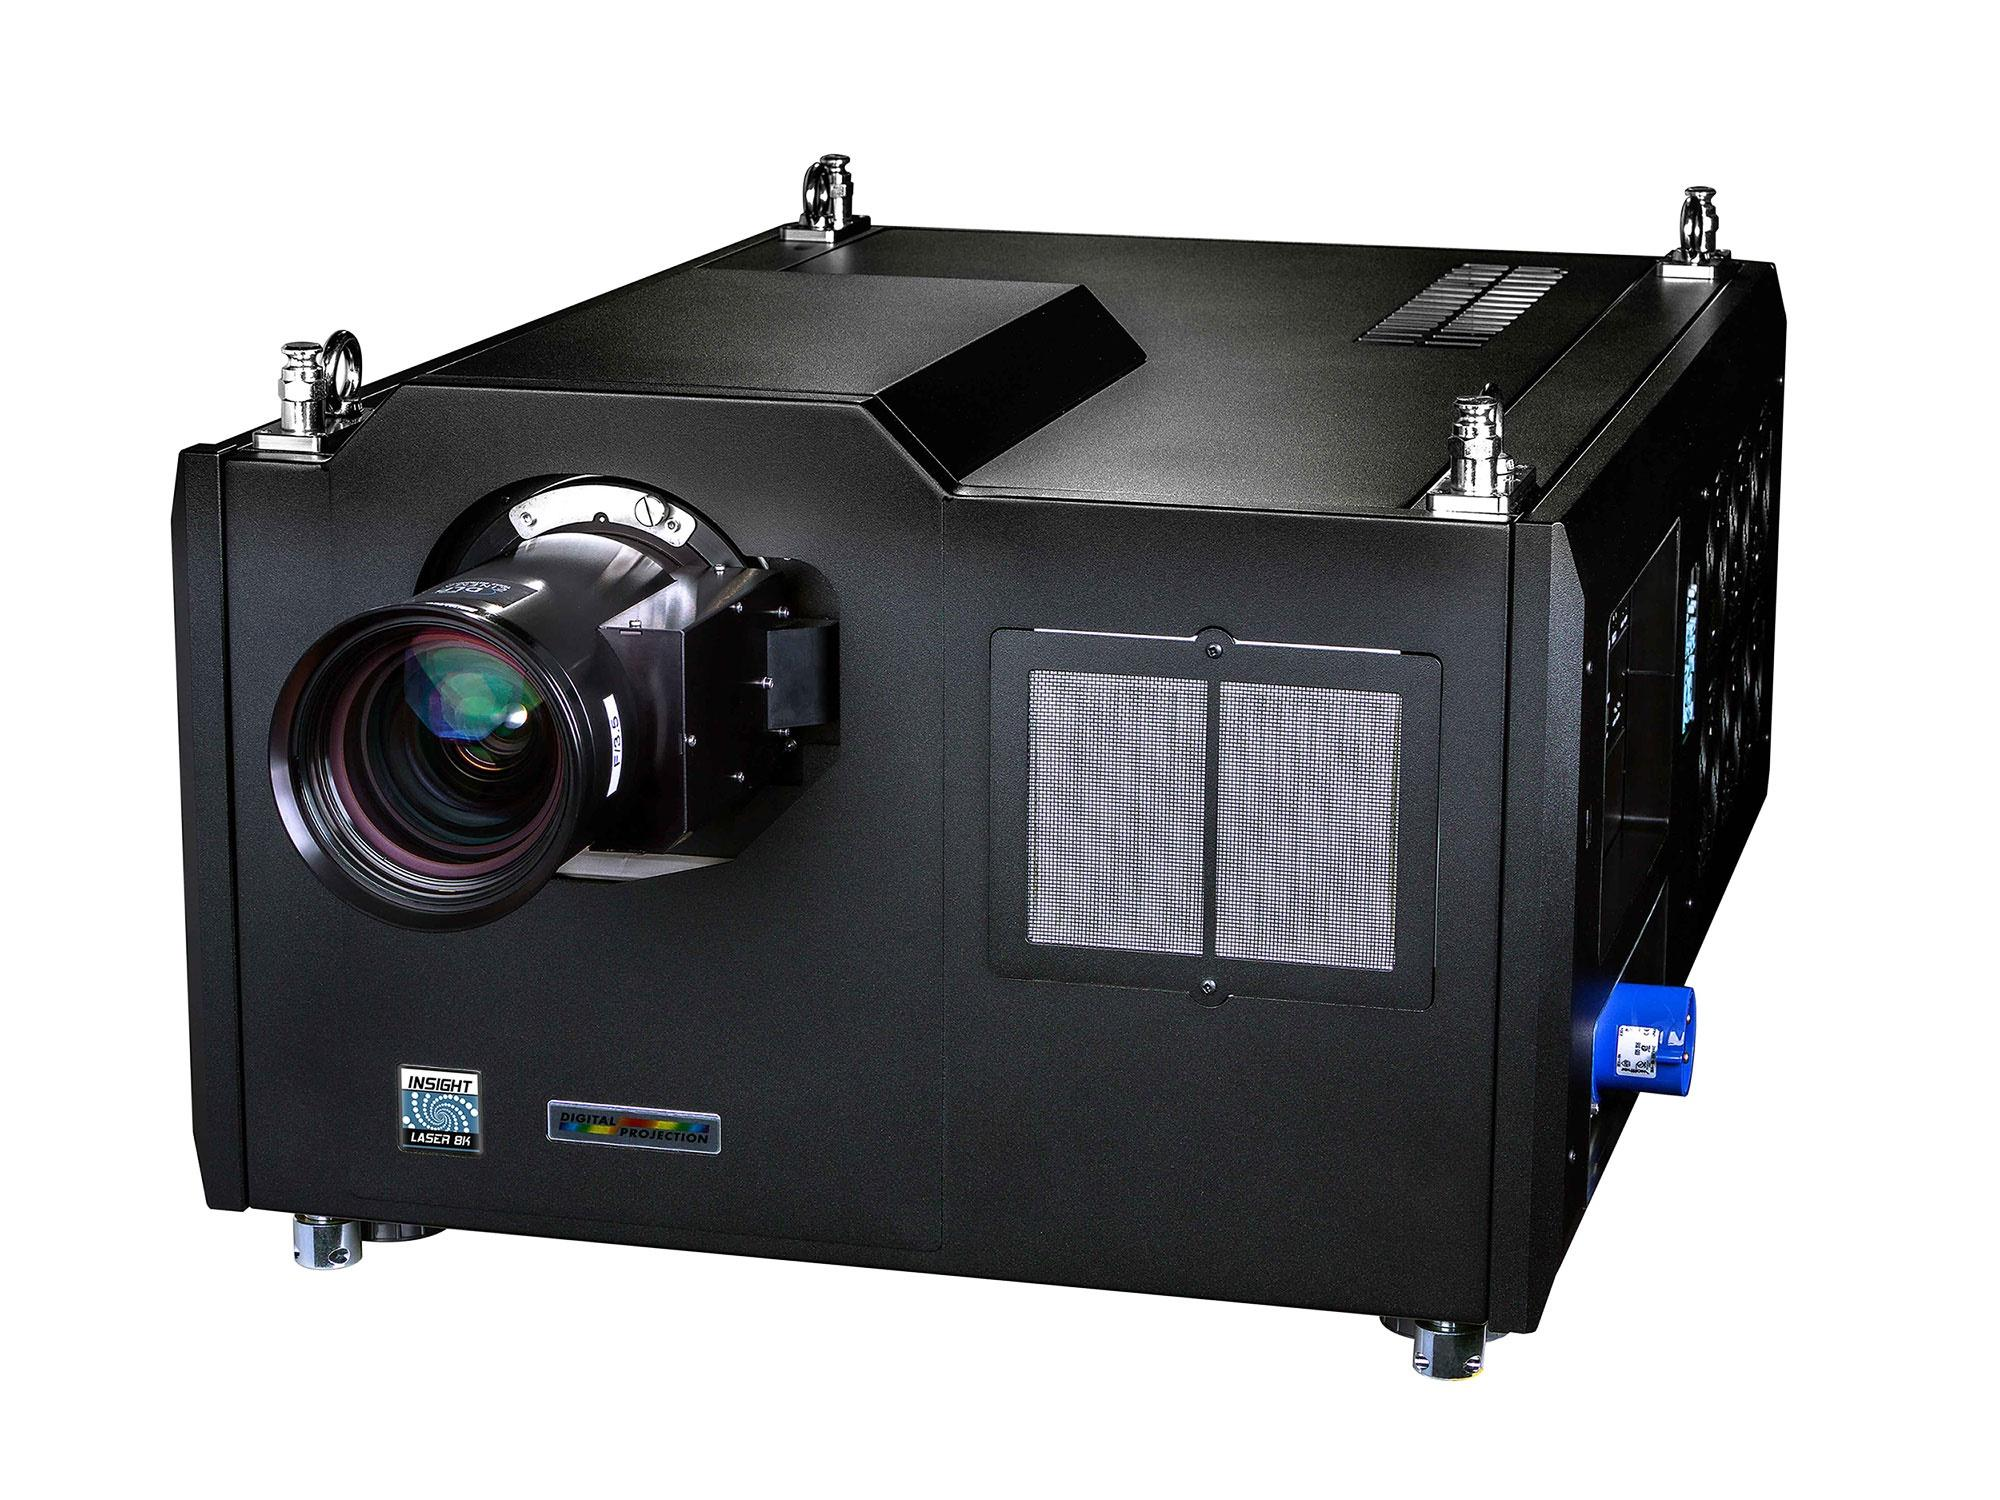 Digital Projection INSIGHT LASER 8K 8K Resolution Projector with 25000 Lumens of Laser Illumination for the Ultimate Experience in Visualization